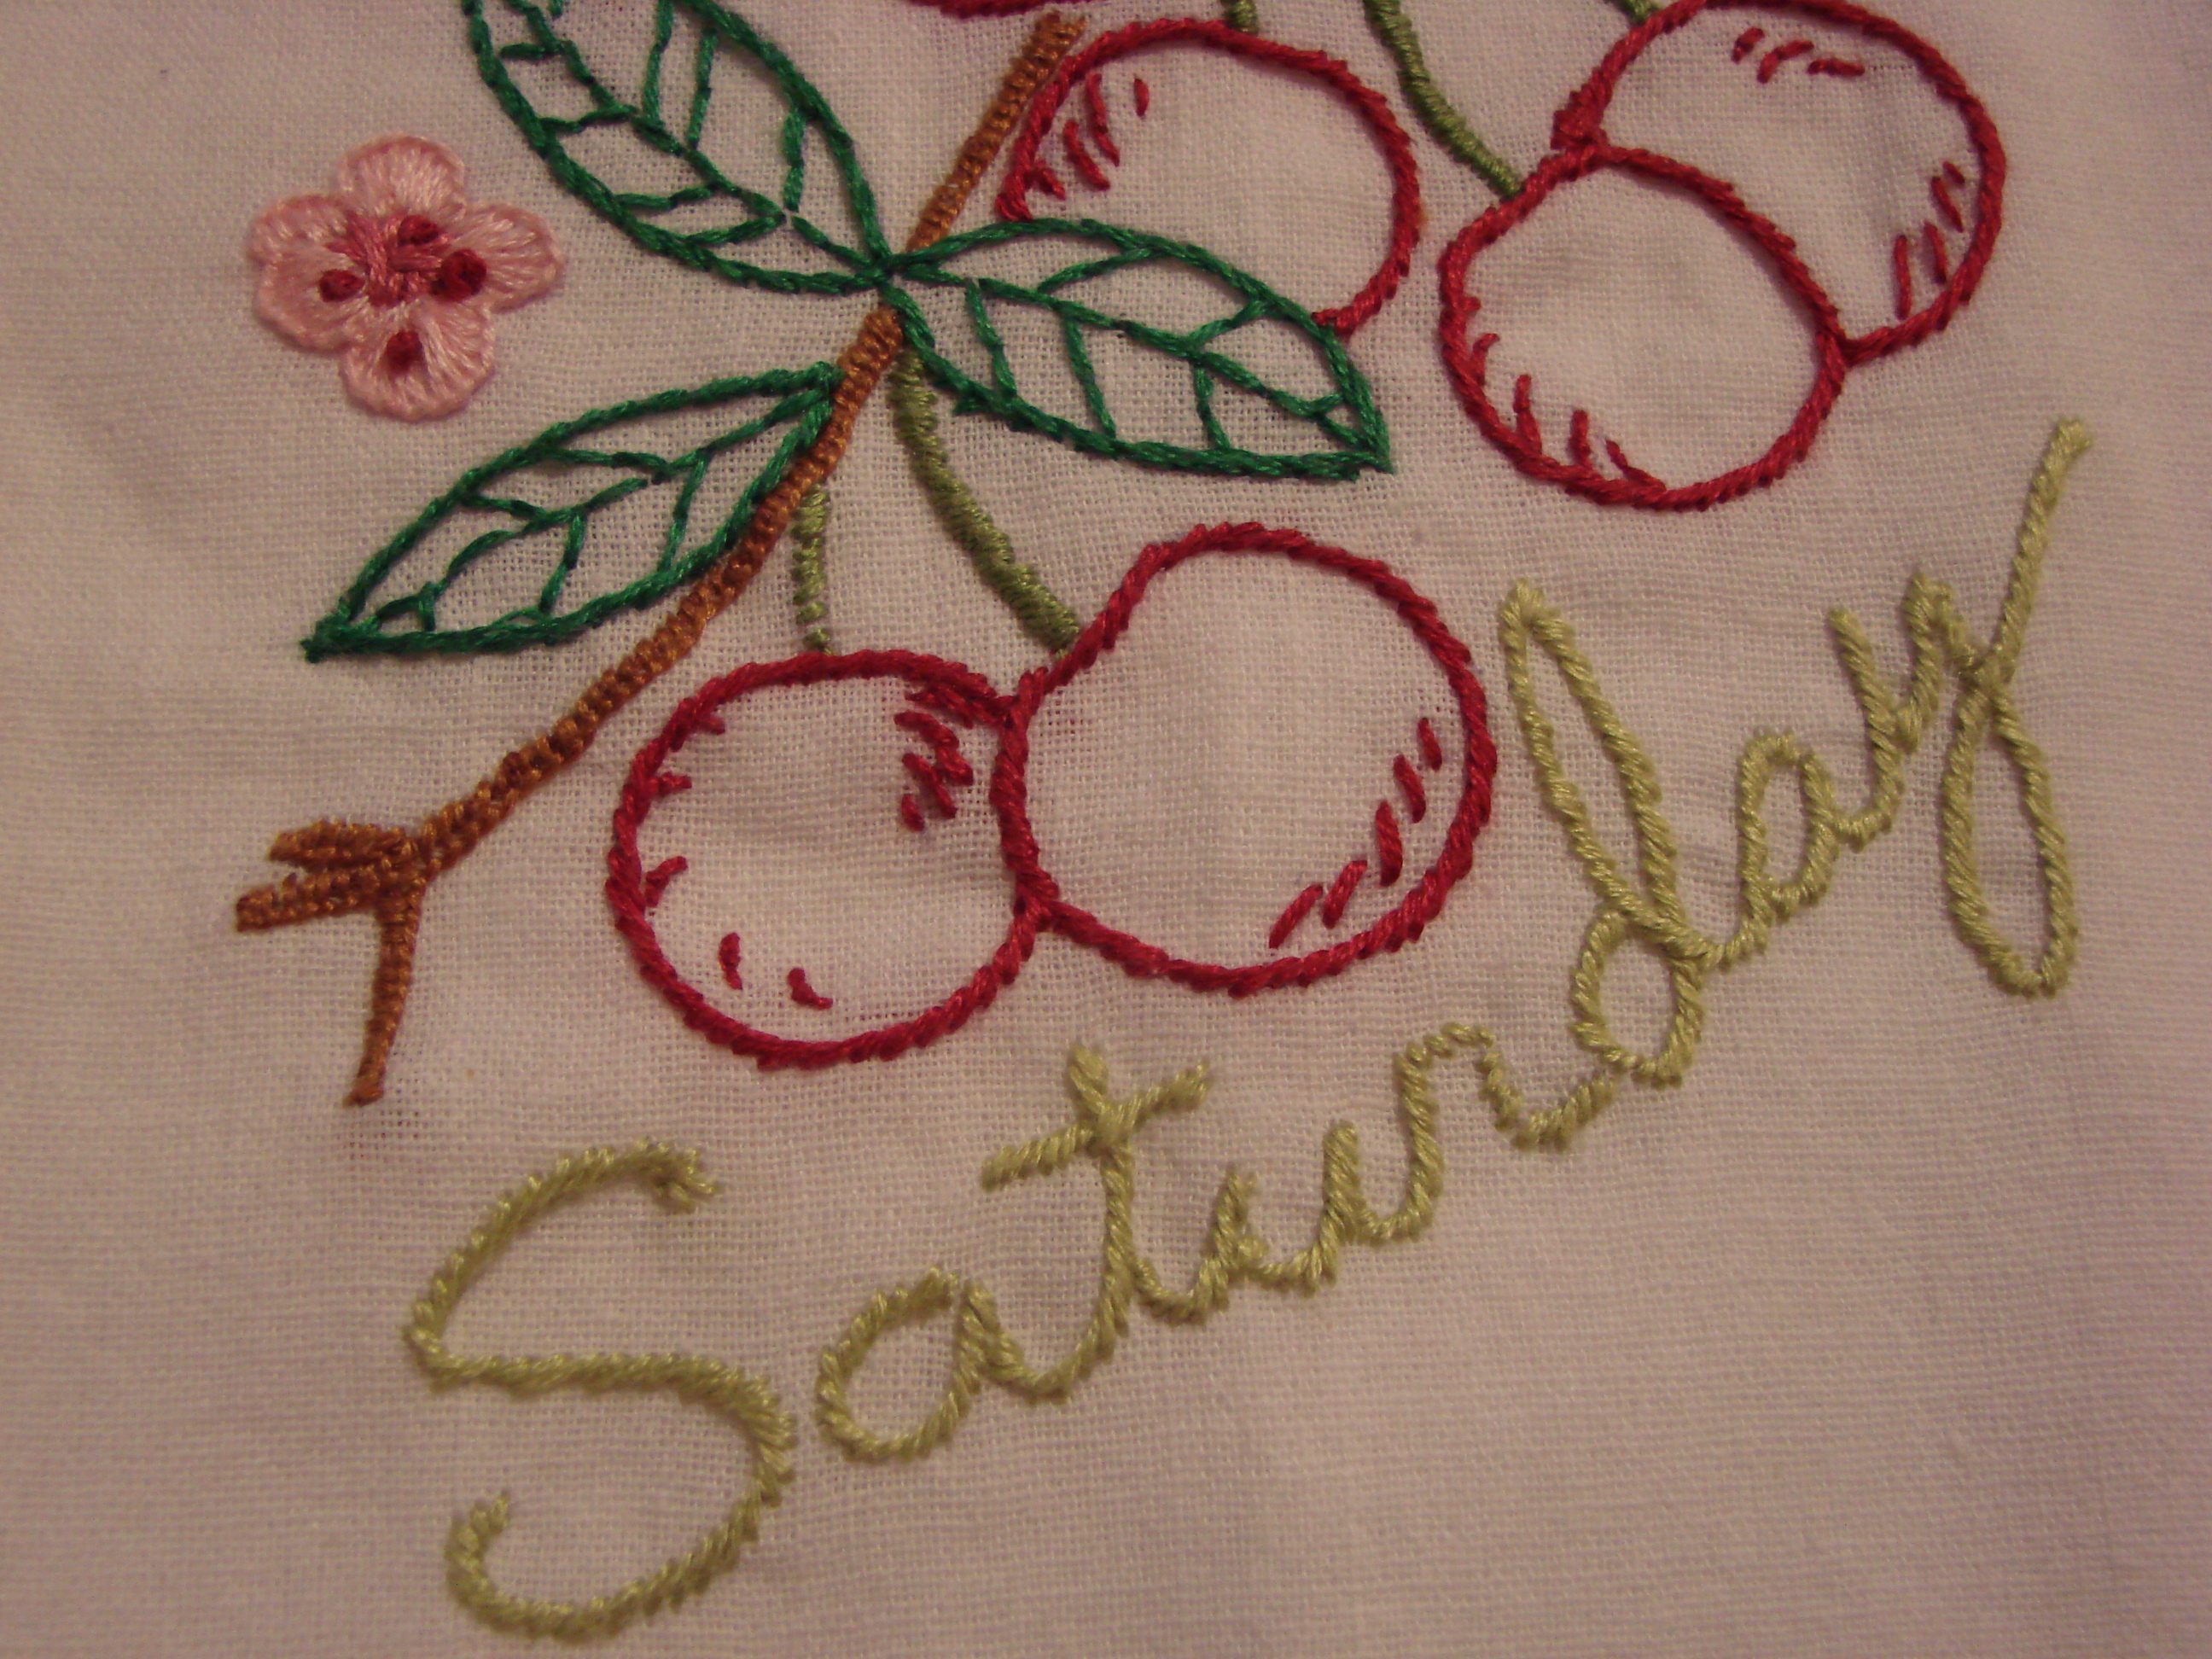 Kitchen Towel Embroidery Patterns Days Of The Week Tea Towels Craft Crossing